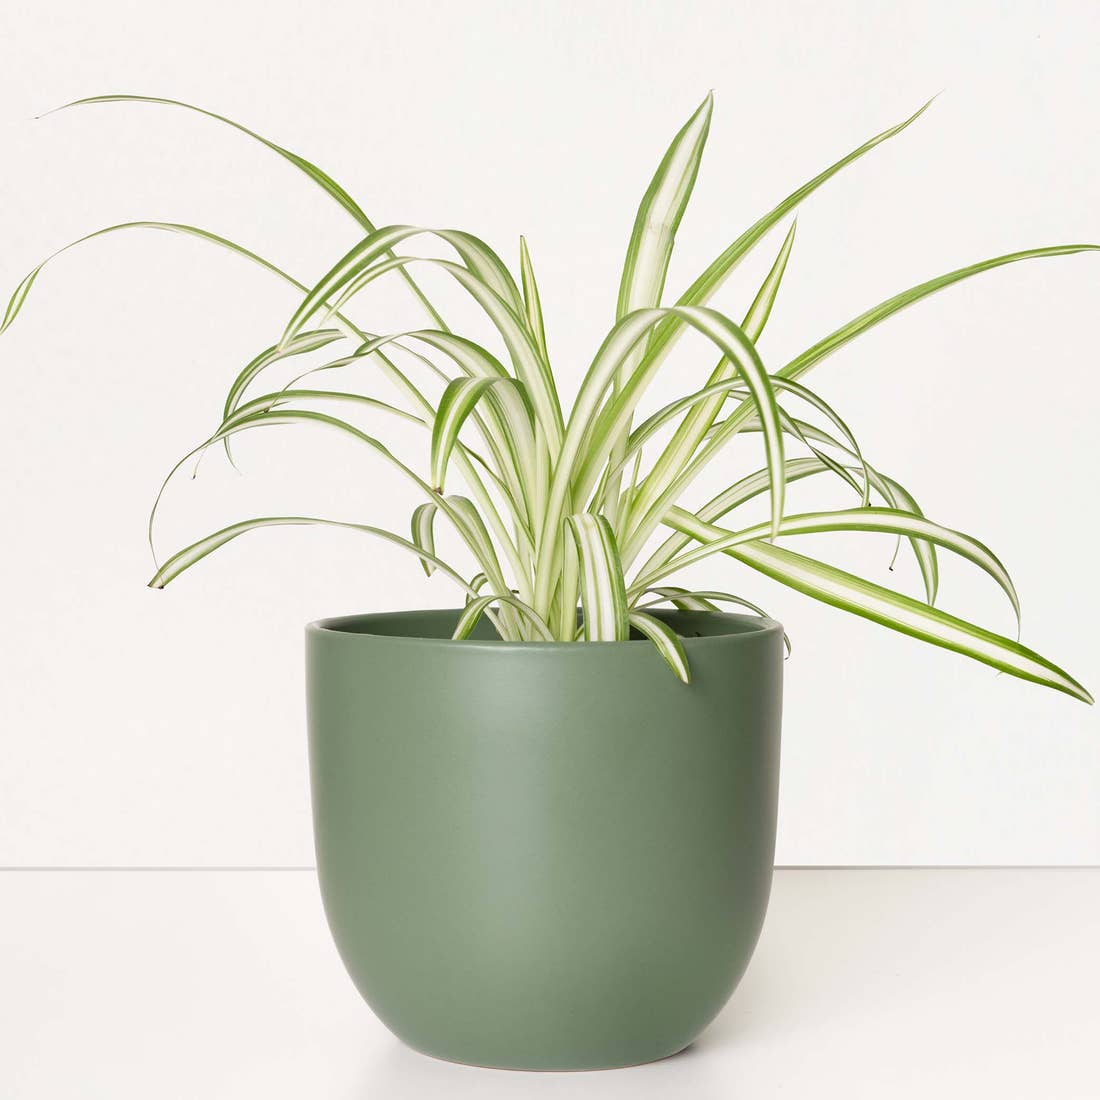 Contour Ceramic Planter in Forest Green